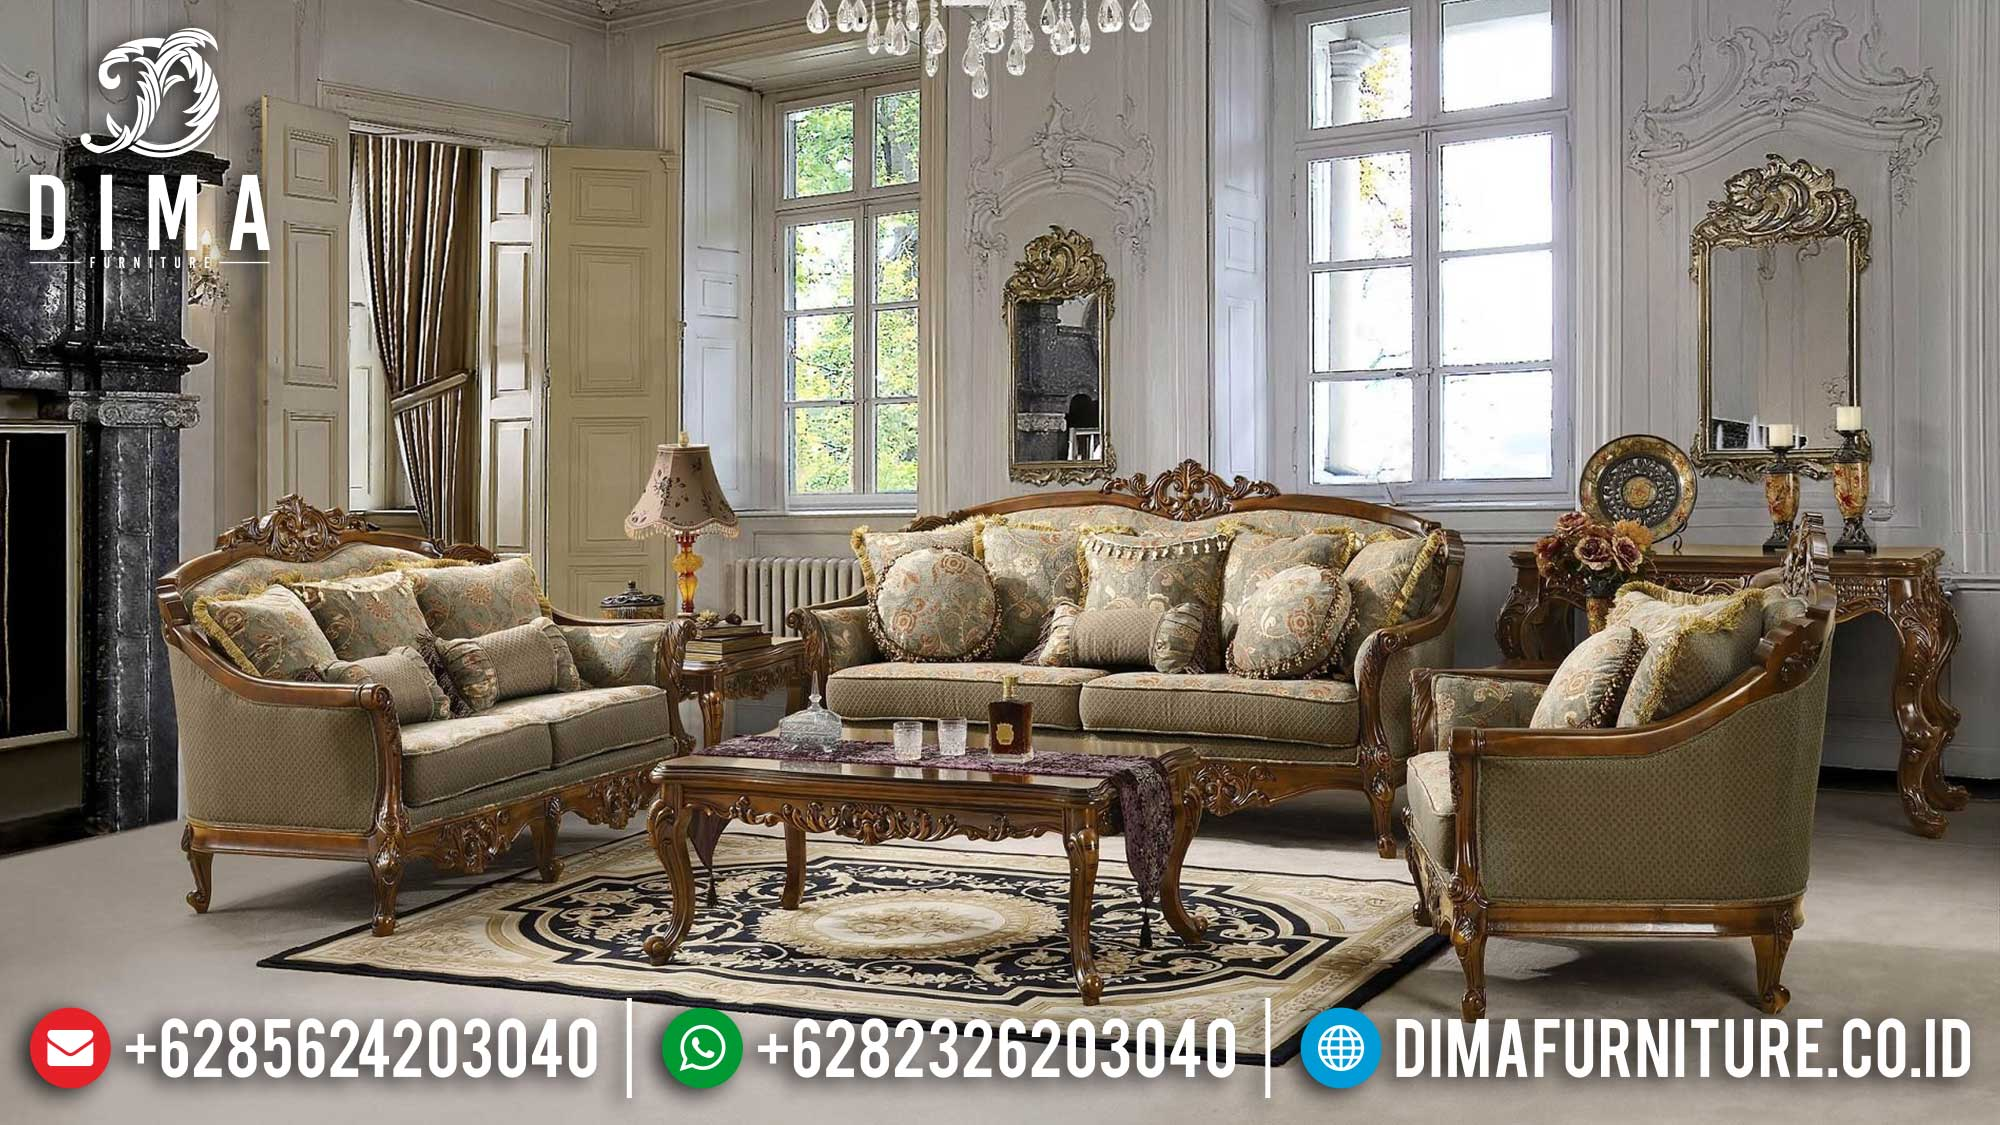 Best Set Sofa Tamu Mewah Luxury Classic Furniture Jepara TTJ-1620